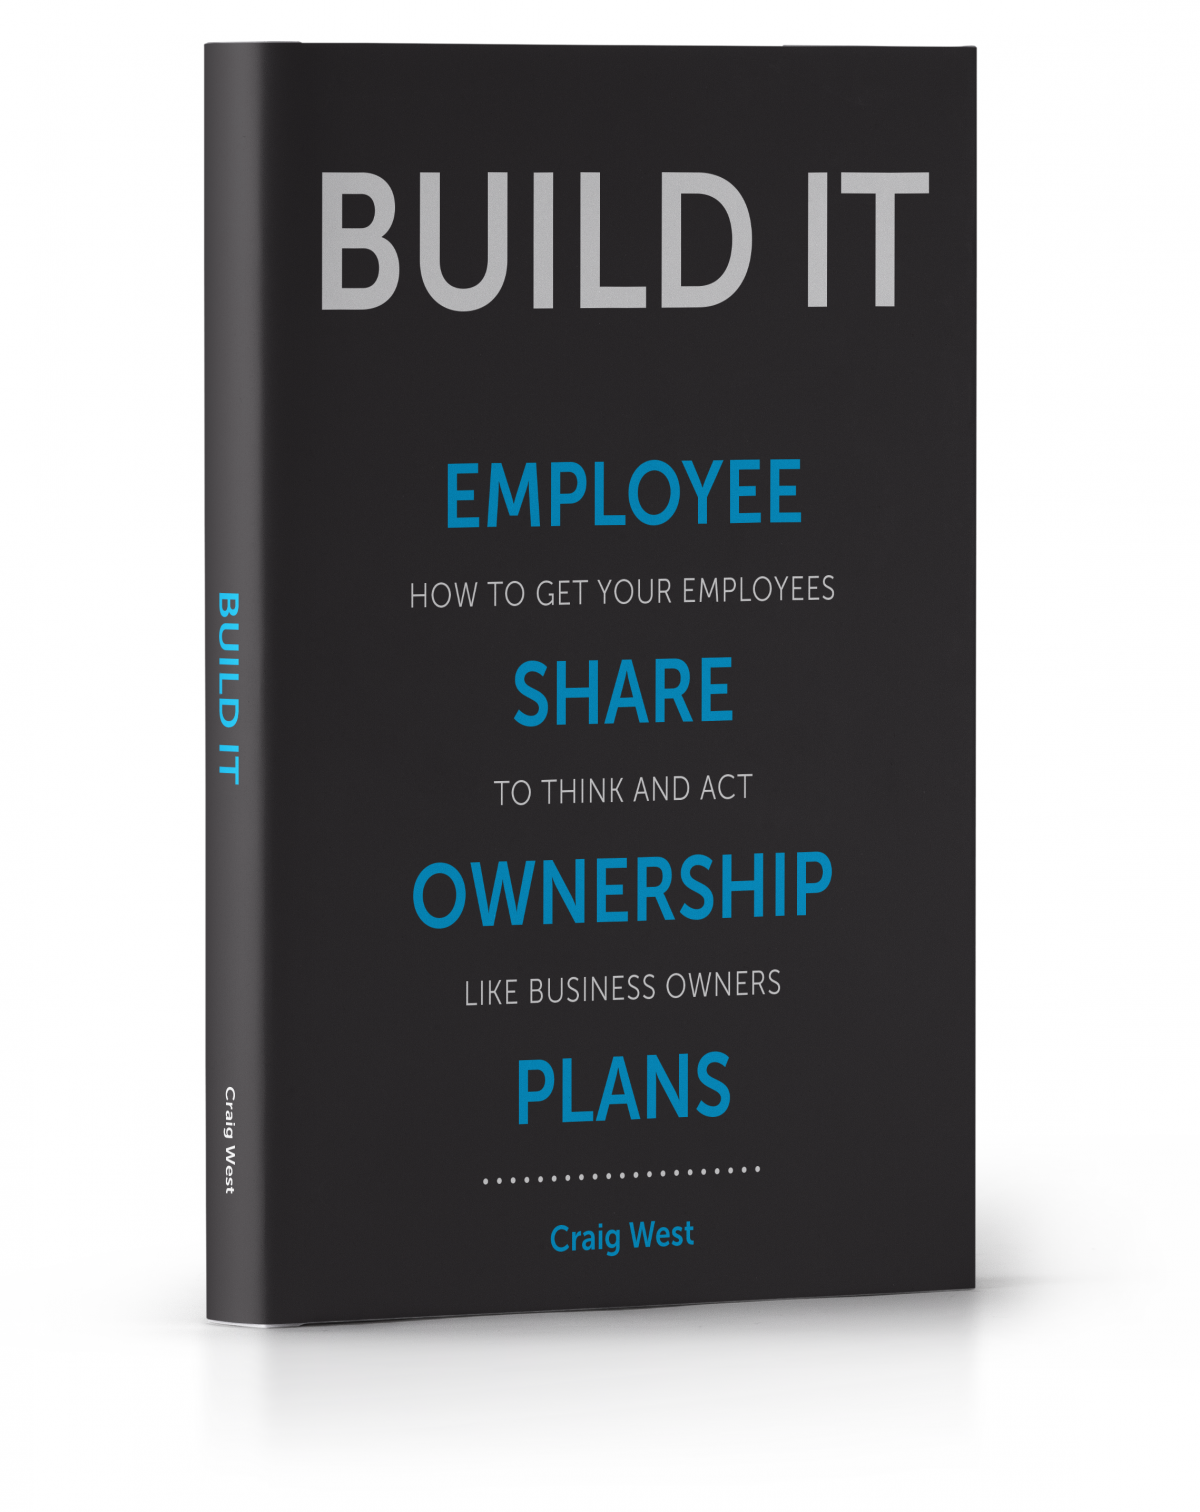 BuildIt-Book-Mockup190320